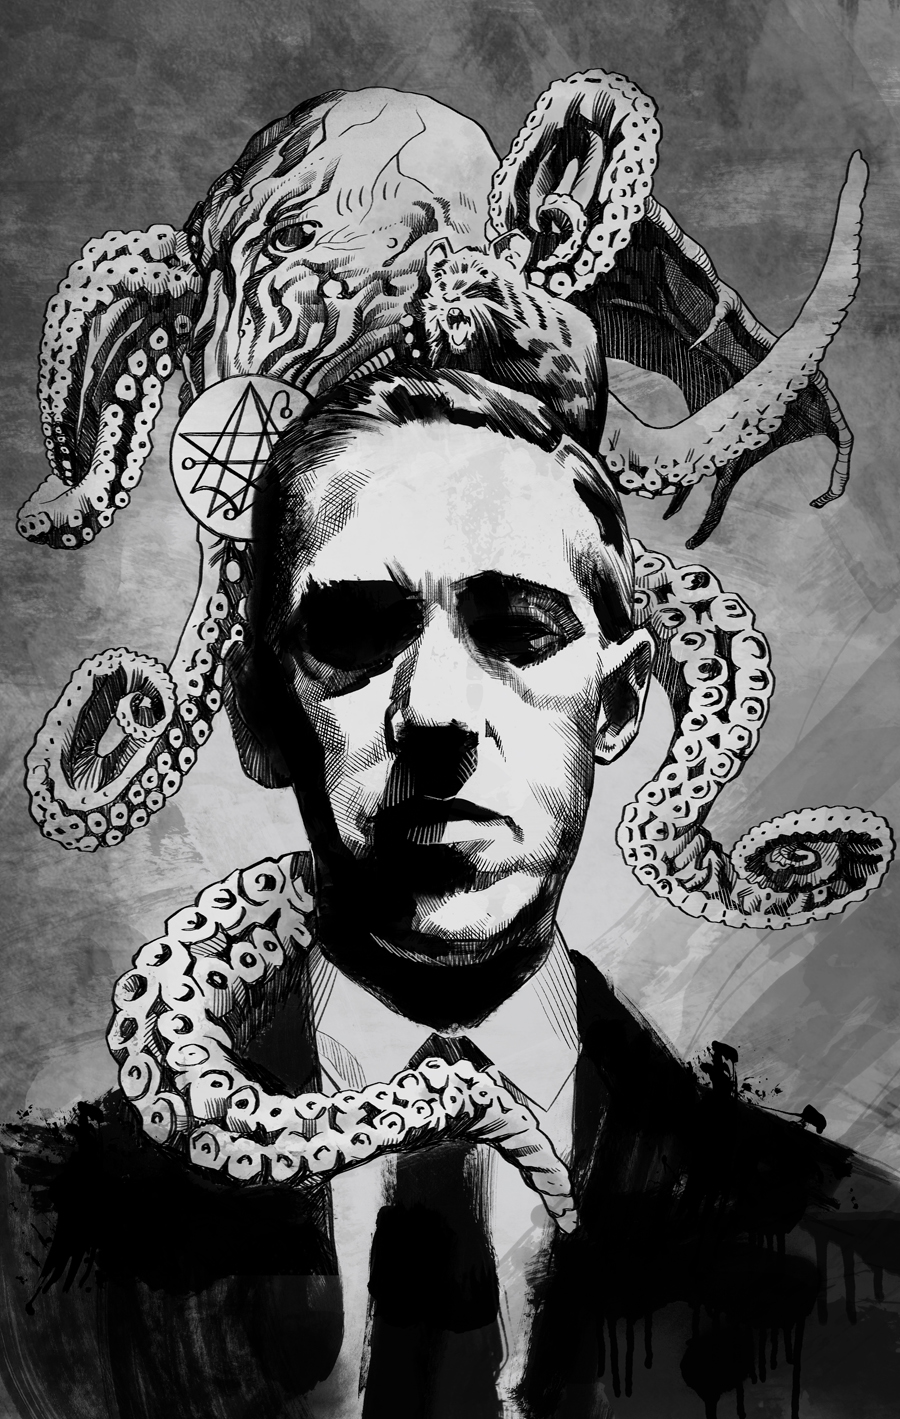 H.P. Lovecraft Print - The Art of Matthew Childers